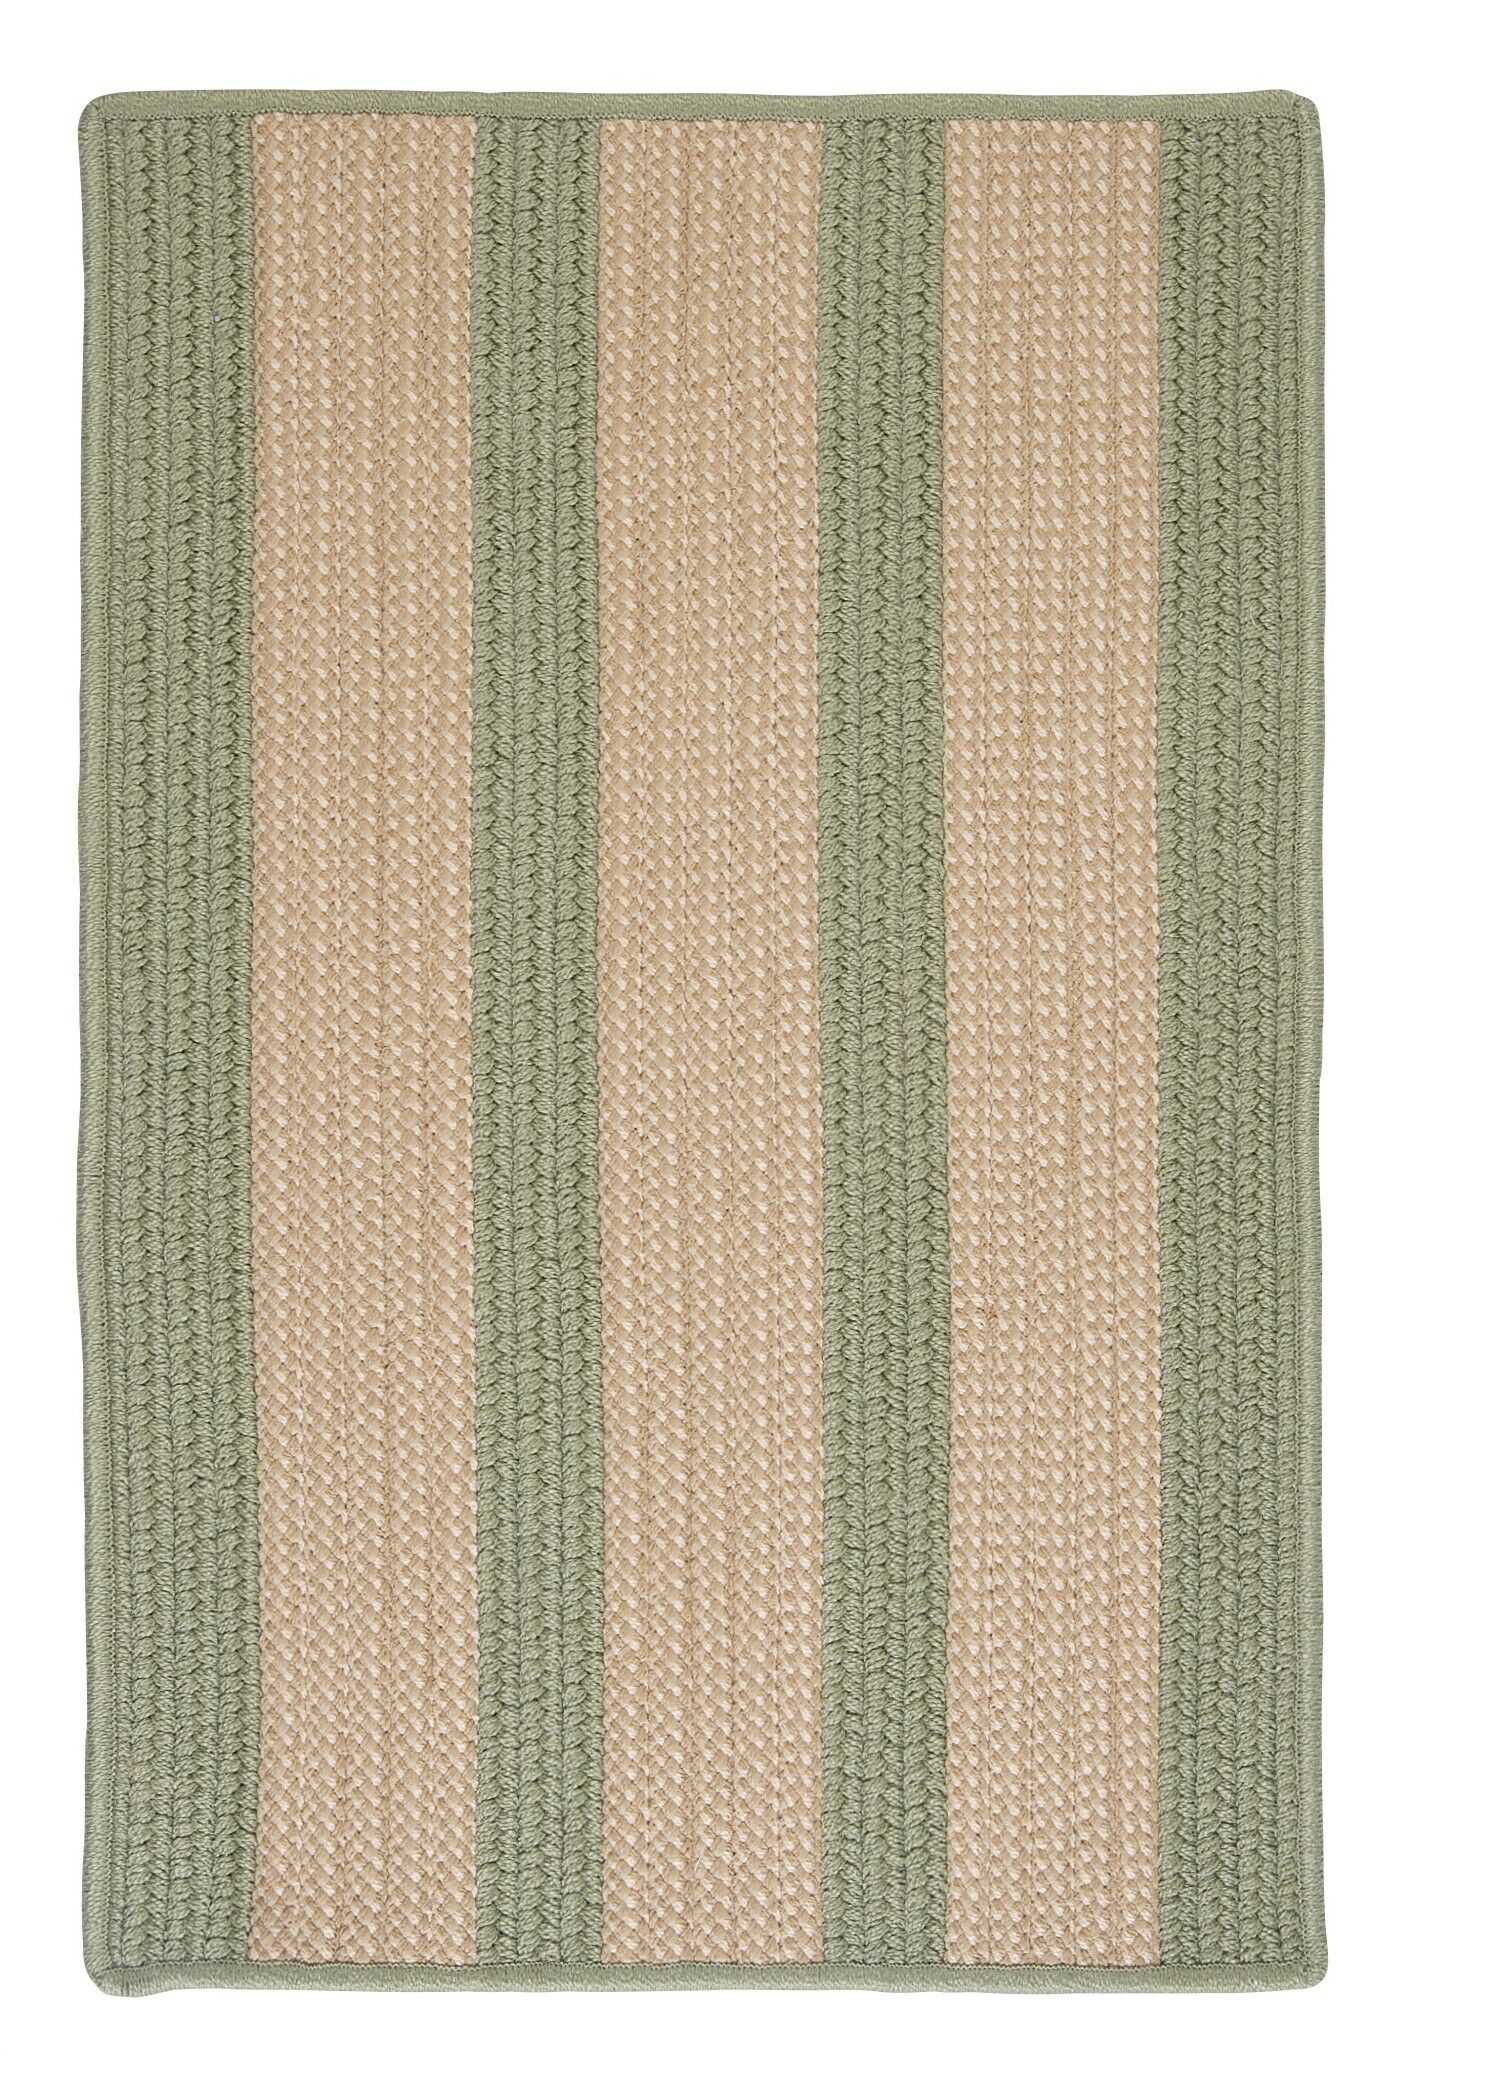 Seal Harbor Olive Indoor/Outdoor Area Rug Rug Size: Rectangle 3' x 5'